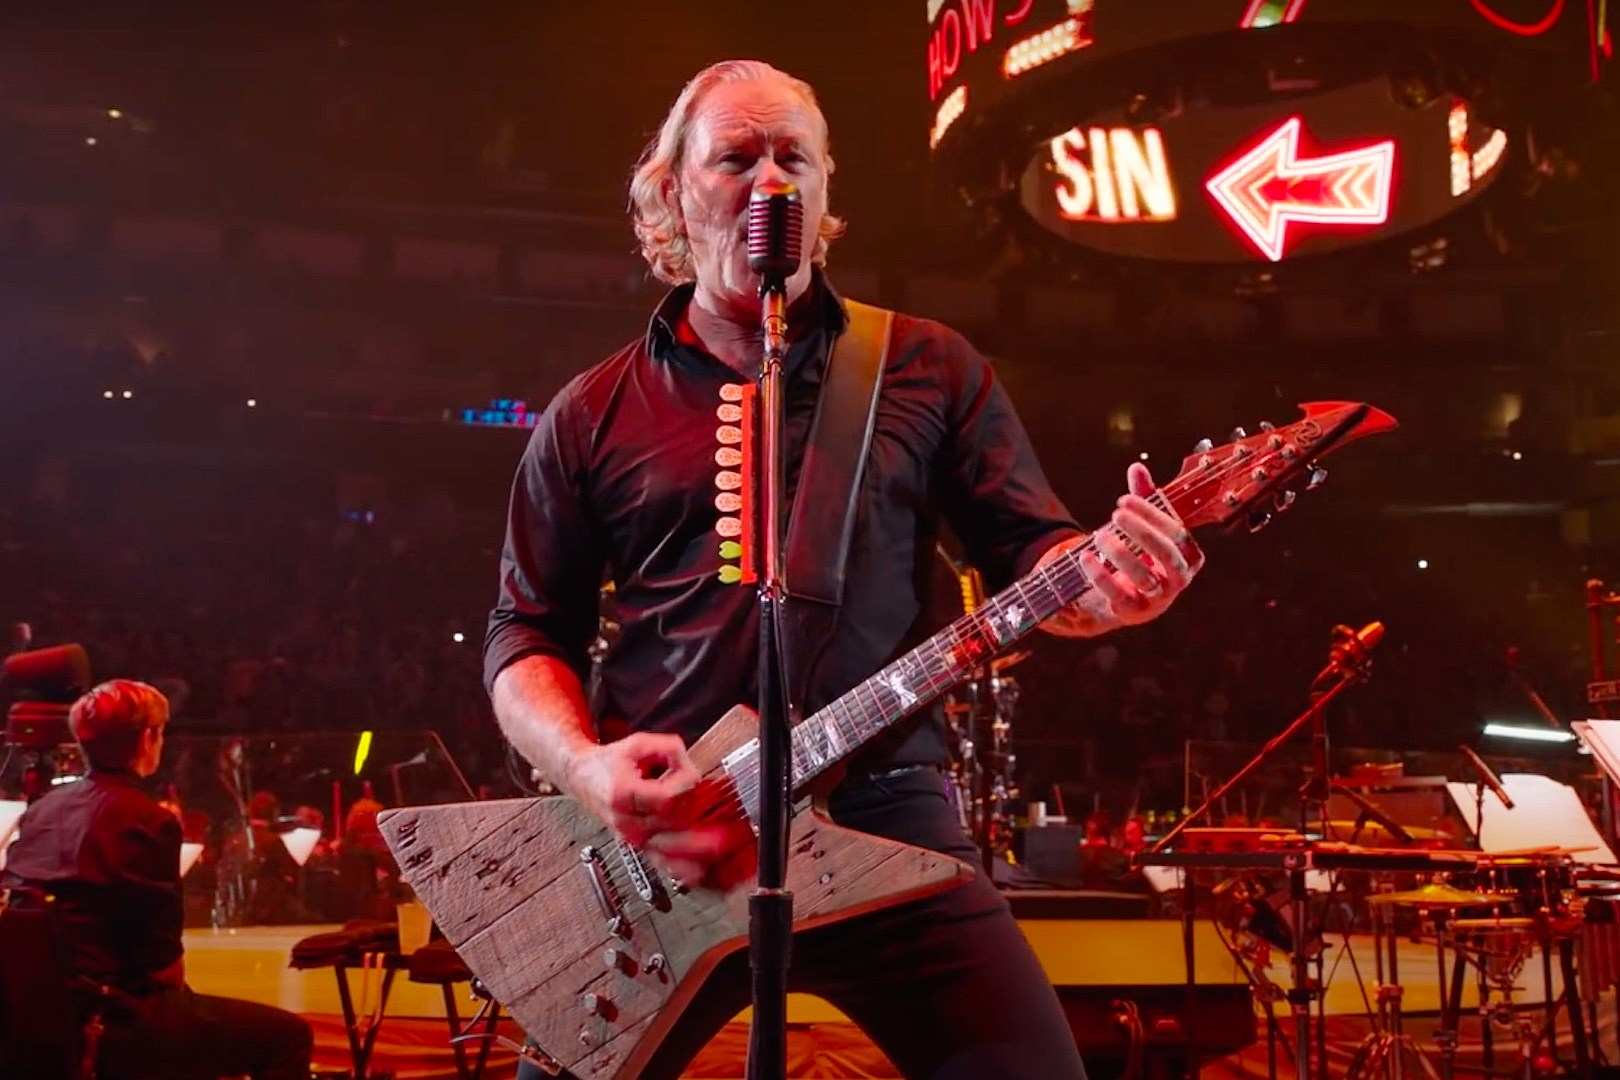 Metallica Release 'Moth Into Flame' Video From 'S&M2'